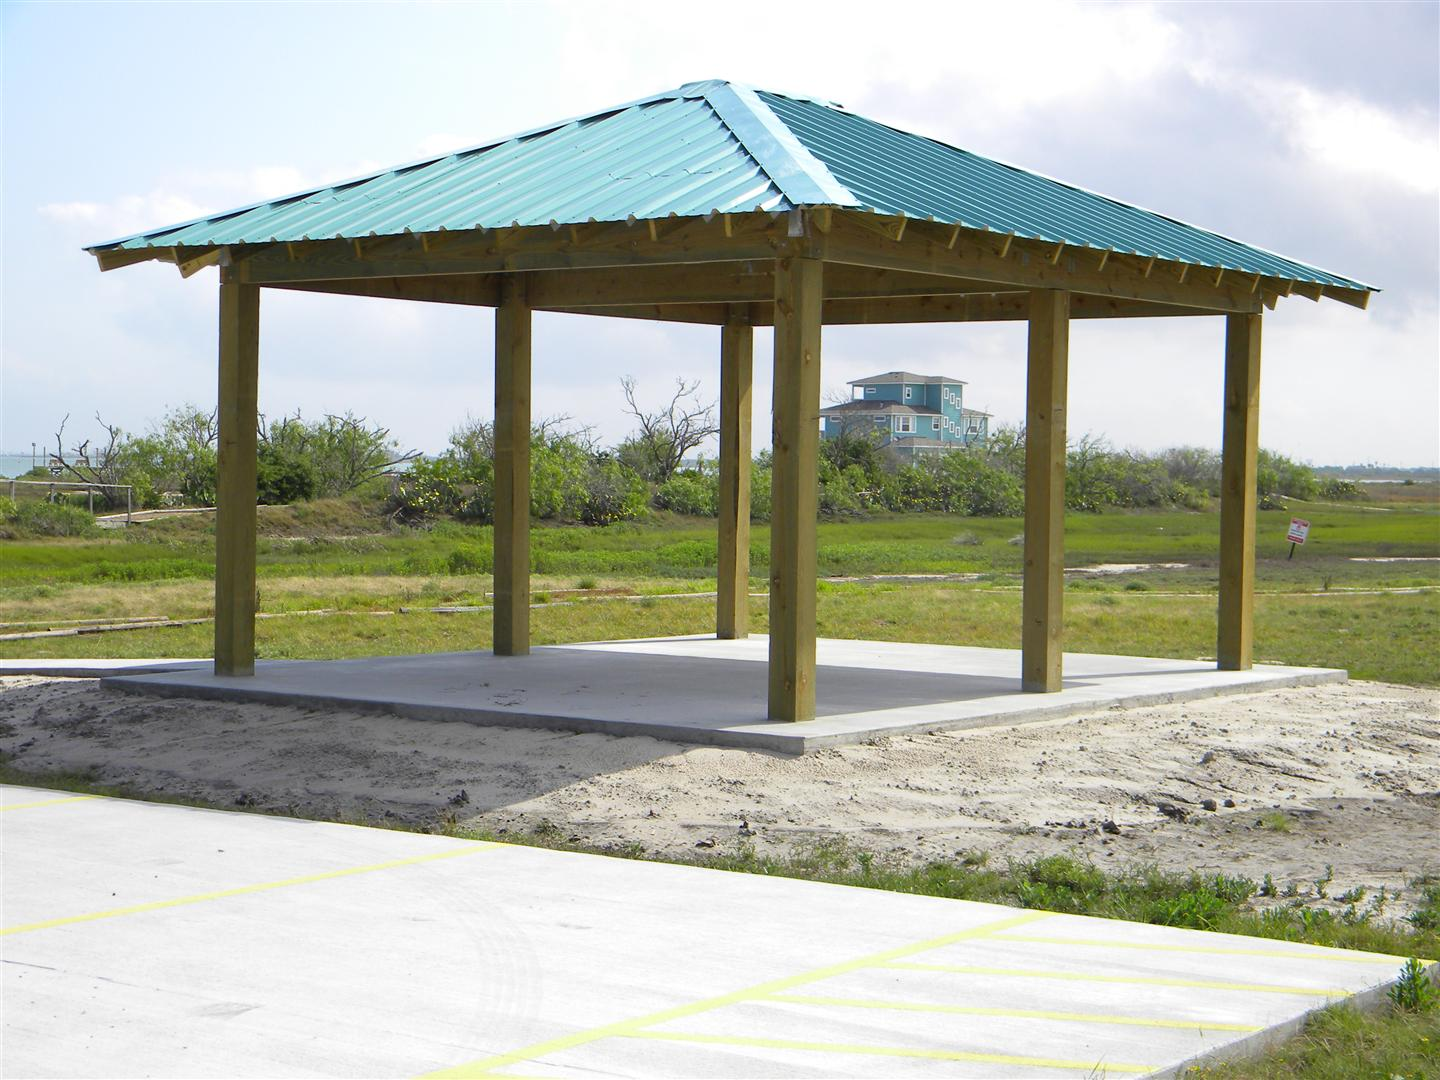 Covered Shelter Polygon : Sunset bay community new covered picnic shelter completed